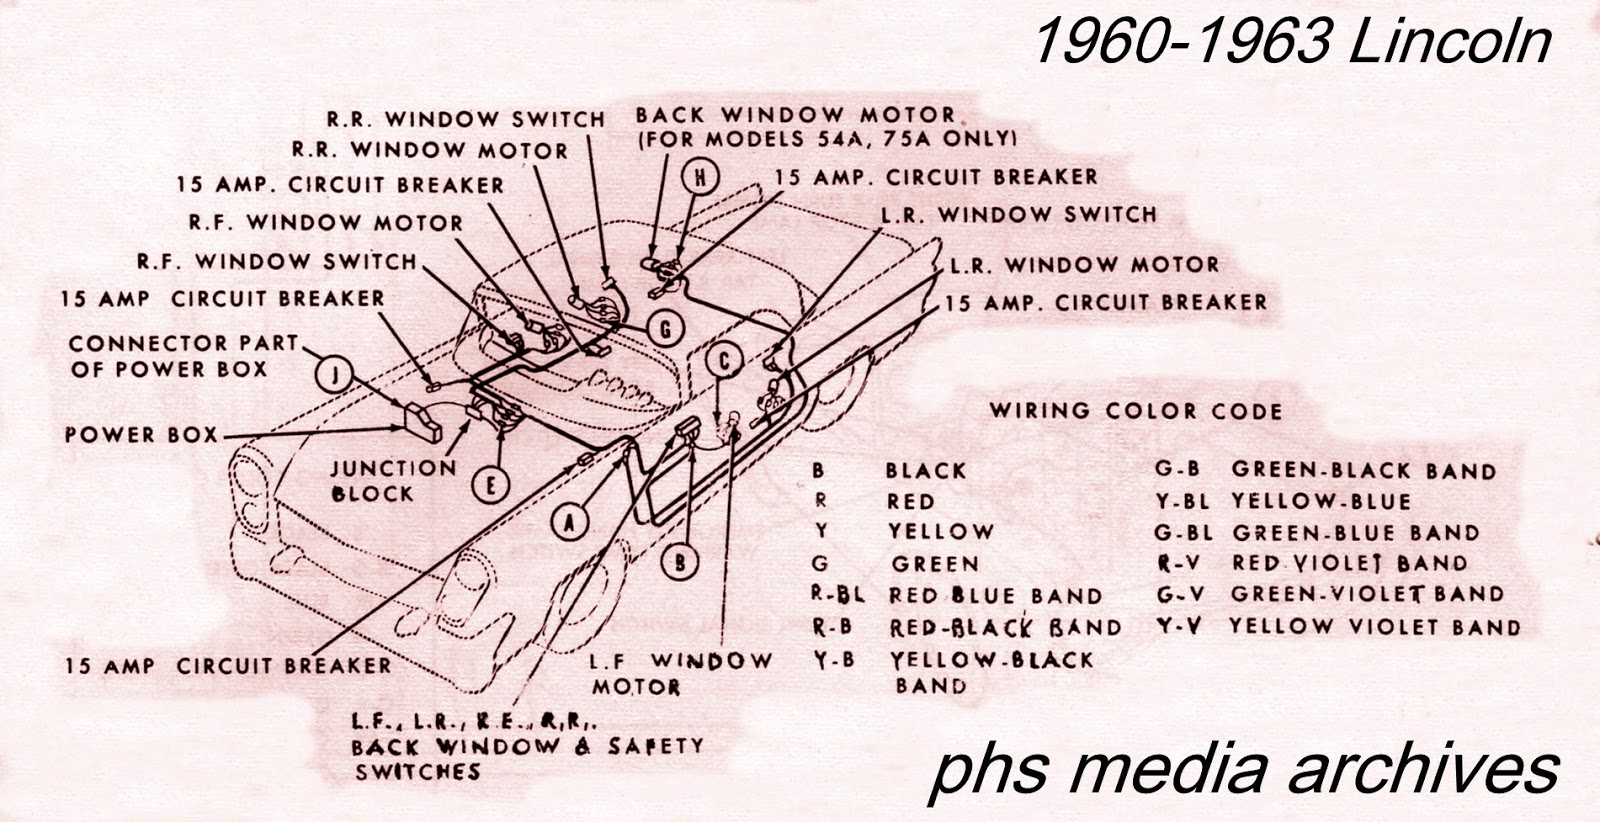 medium resolution of tech series 1960 1964 lincoln wiring diagrams phscollectorcarworld rh phscollectorcarworld blogspot com 1998 lincoln navigator wiring diagram 2000 lincoln